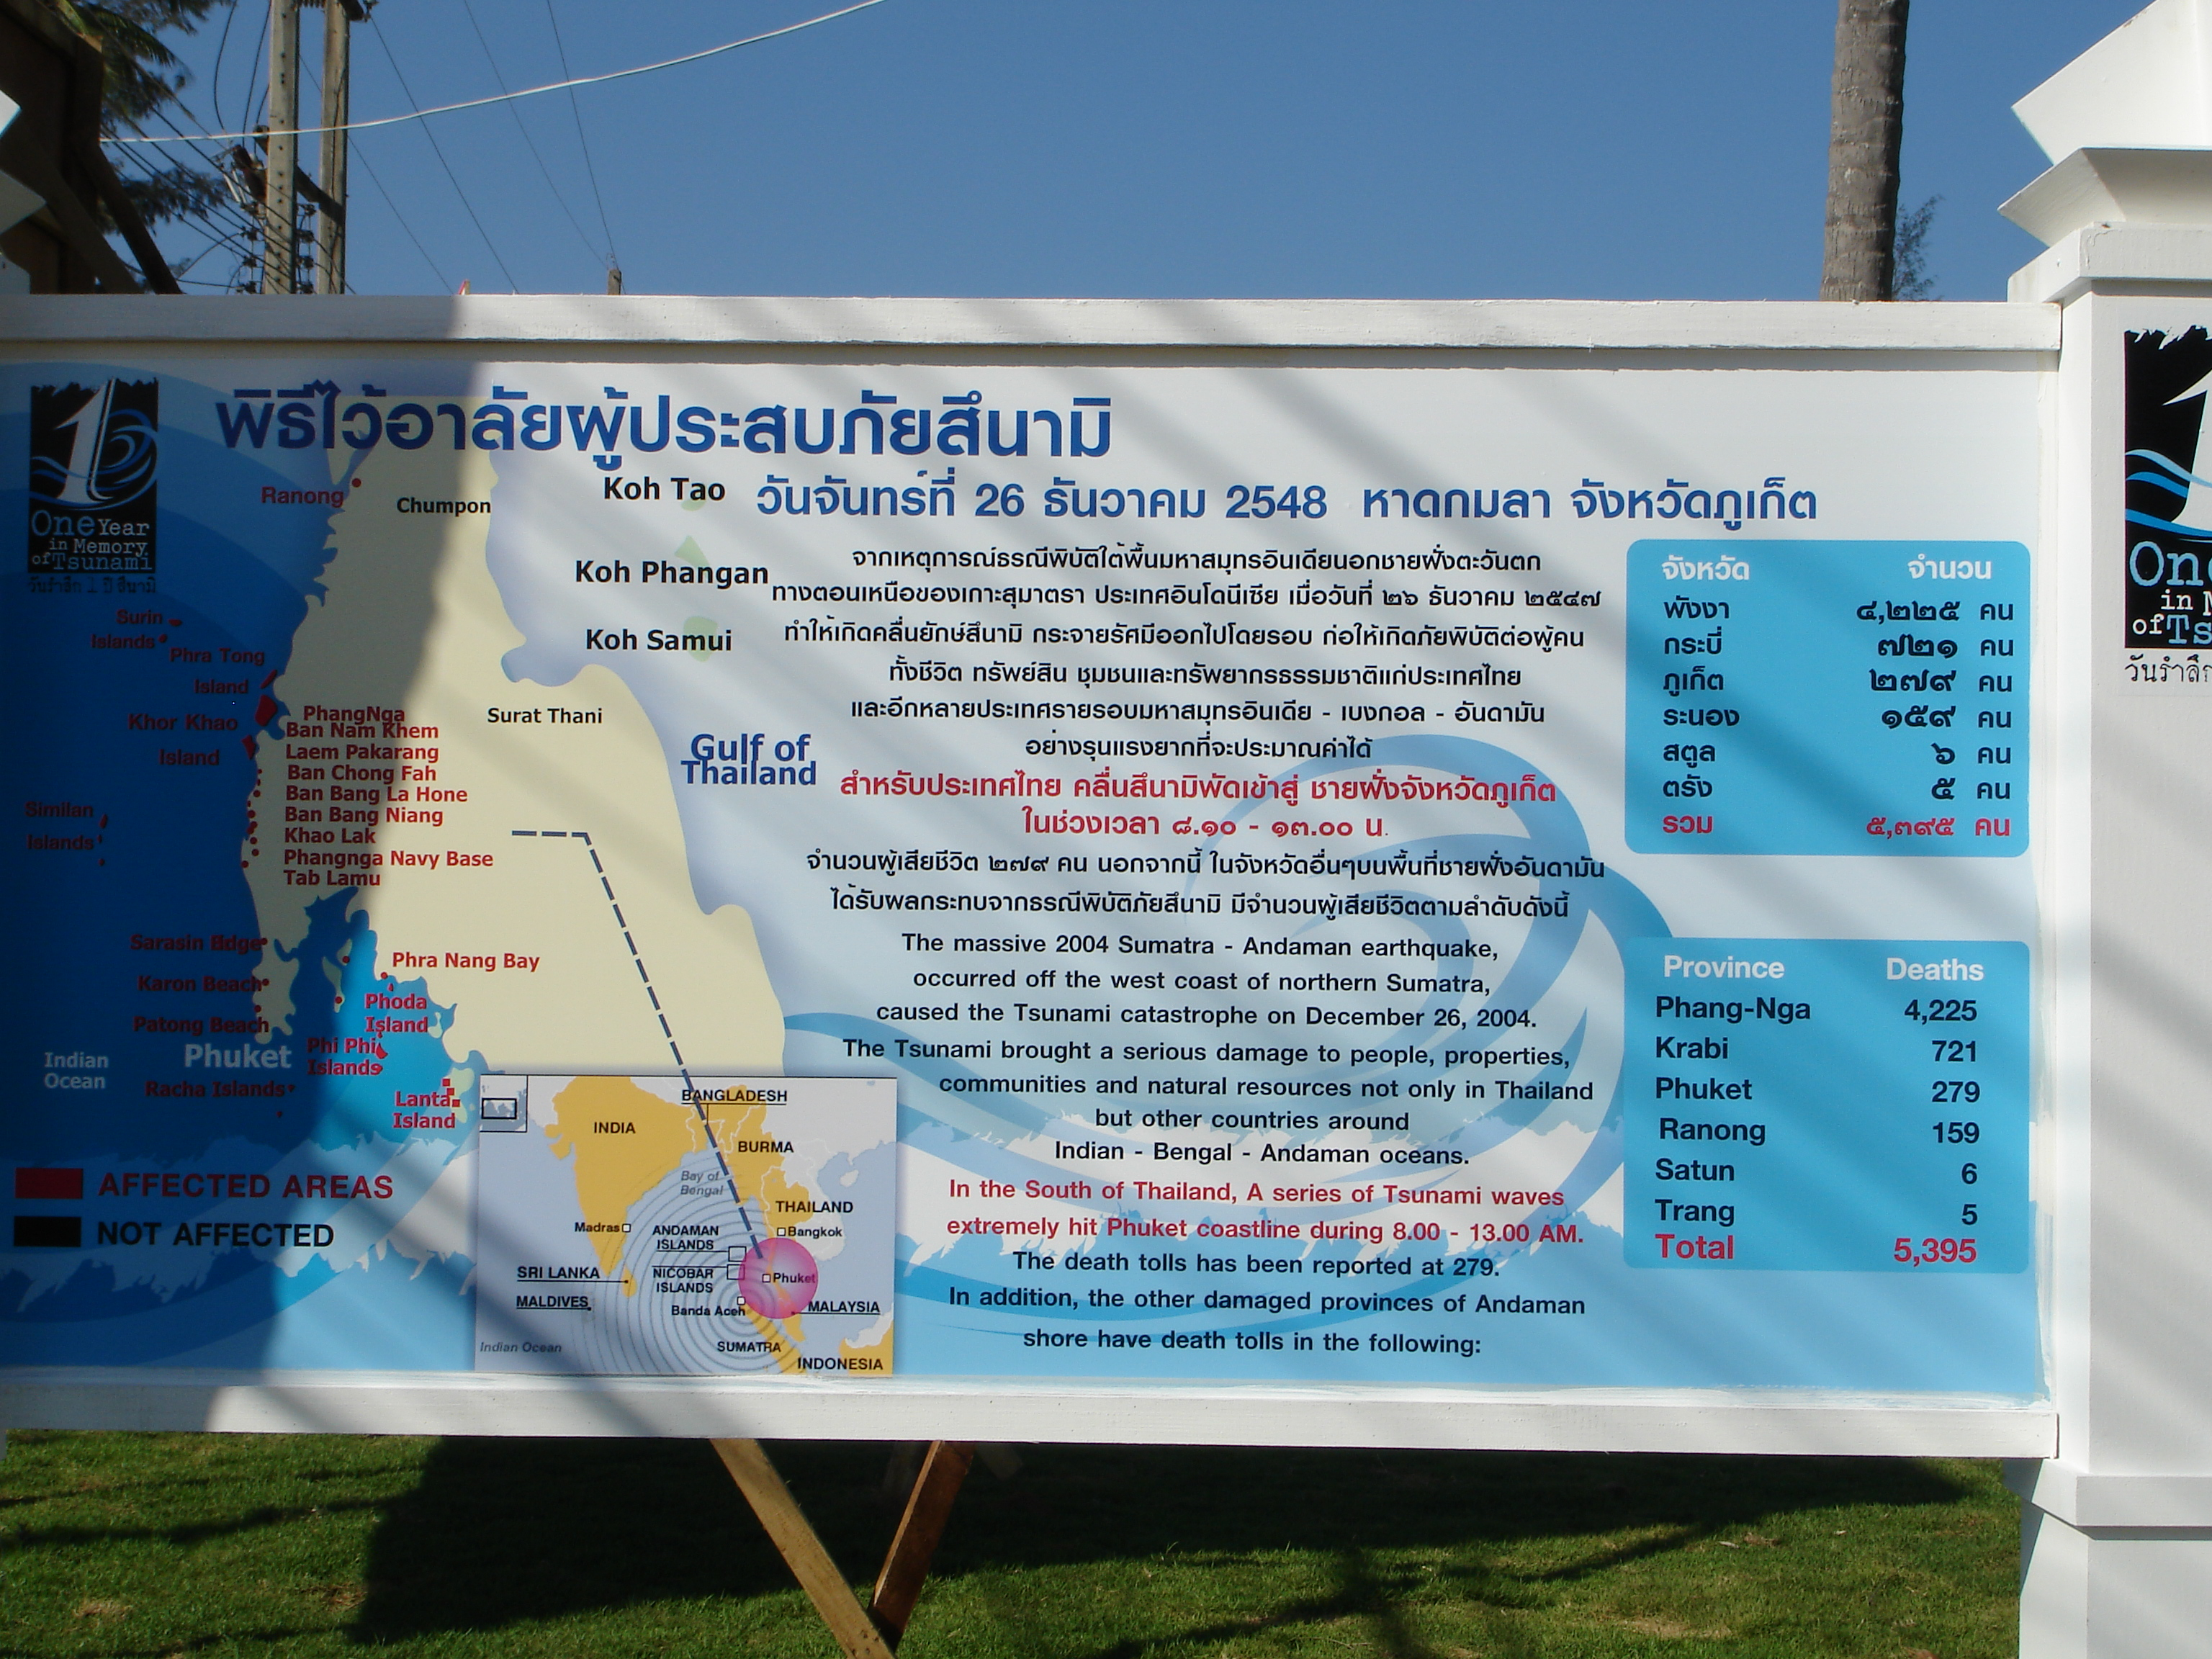 "Map showing areas in Phuket and Phang Nga provinces in Thailand affected by the 2004 Boxing Day tsunami. Casualty ""totals"" are also given although the numbers are vastly under-reported due to the Thai government's fear of the loss of tourism revenue. To this day, some 13 years later, there is still a large number of names listed as ""Missing"" rather than ""Died"" in order to keep the numbers artificially low. Photo taken by Mark Jochim on Patong Beach, Phuket, on December 24, 2005."